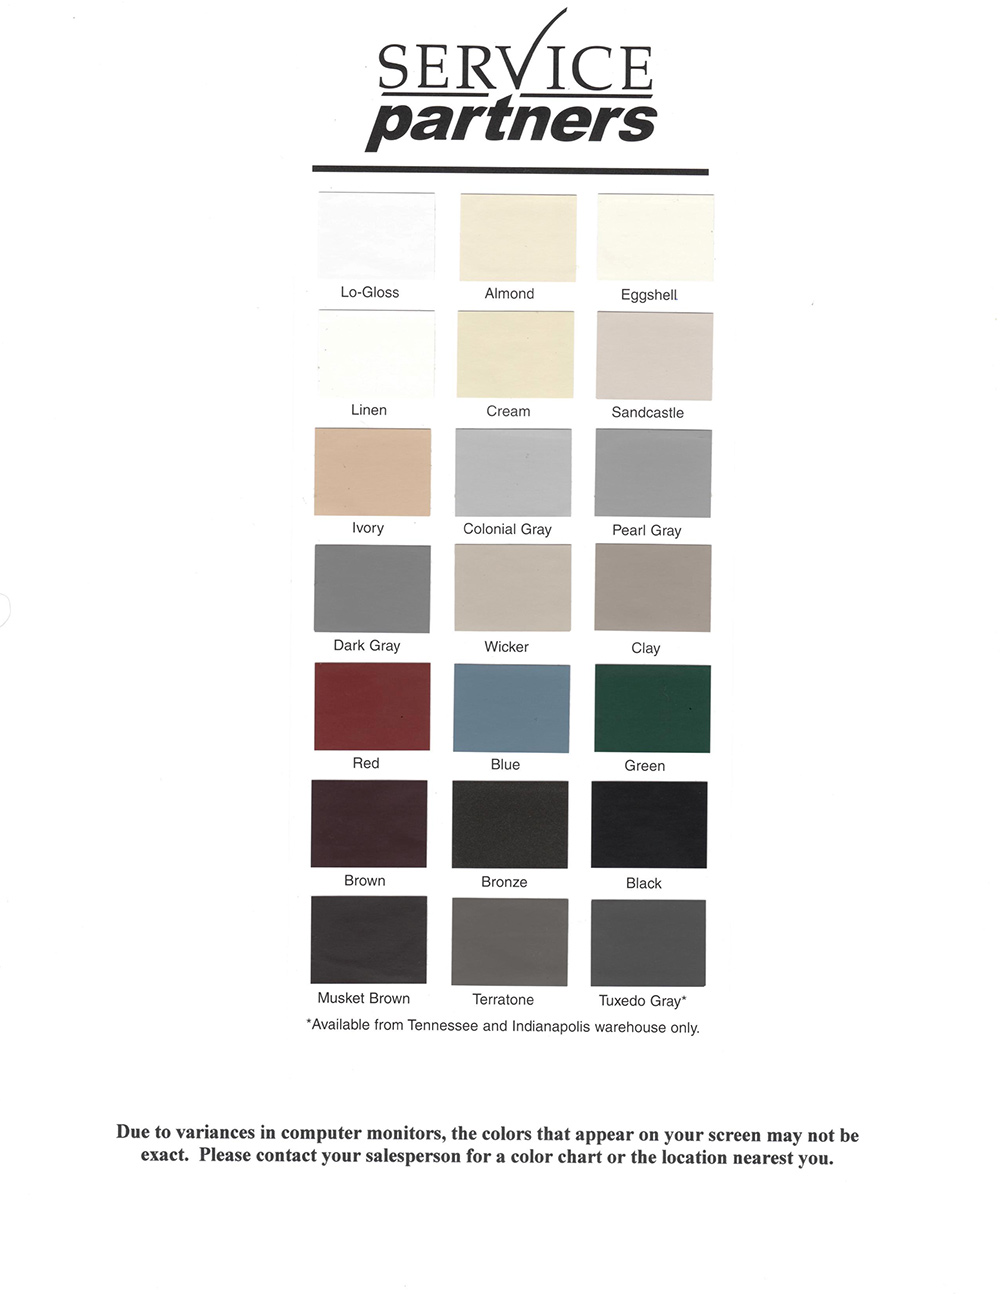 New Hampshire Seamless Gutter Colors | Gutter Color Choices